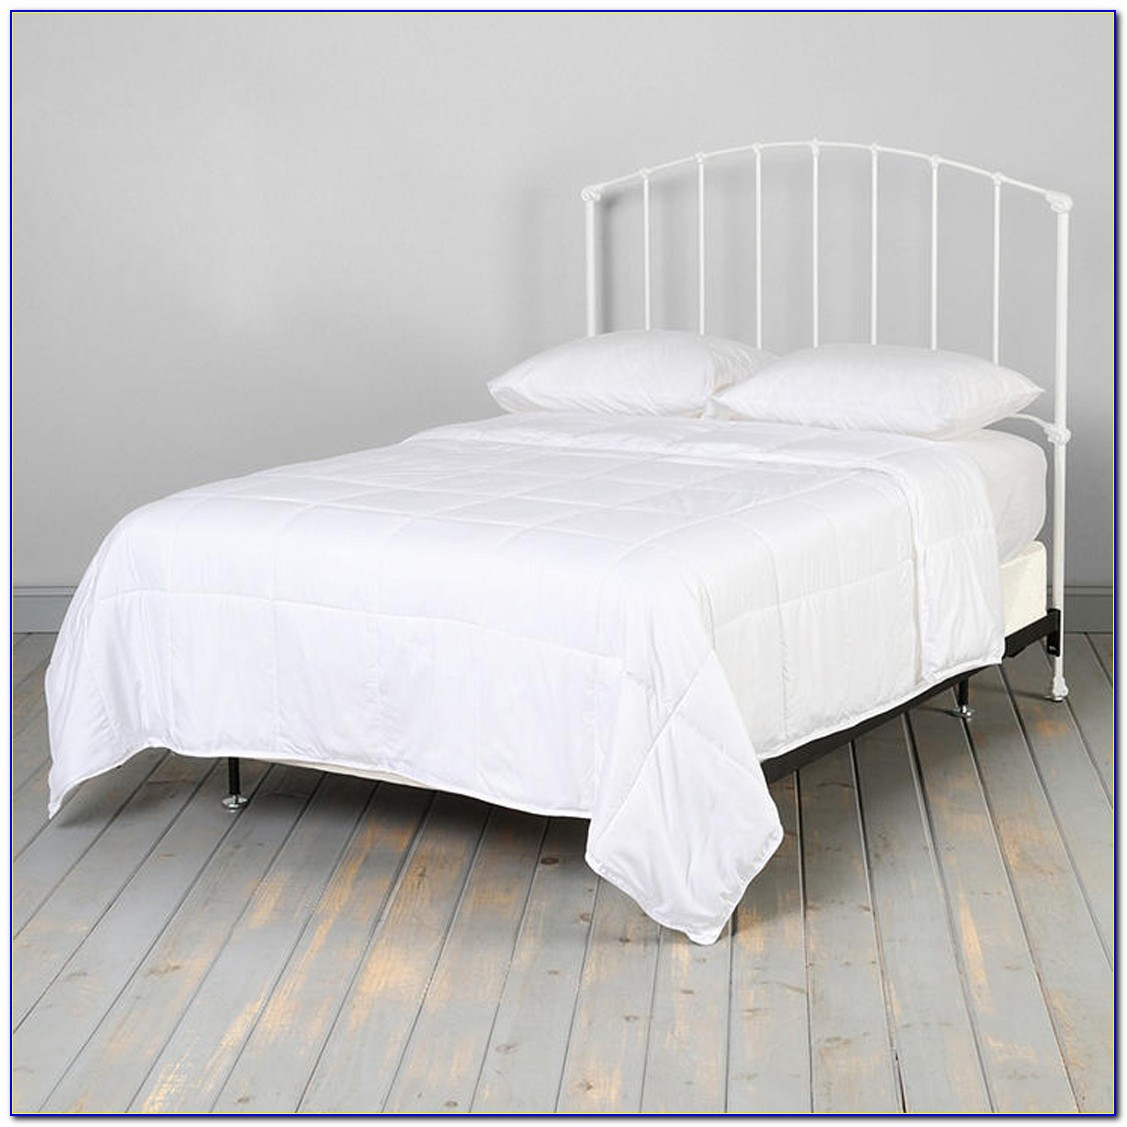 White Wrought Iron Full Size Headboard